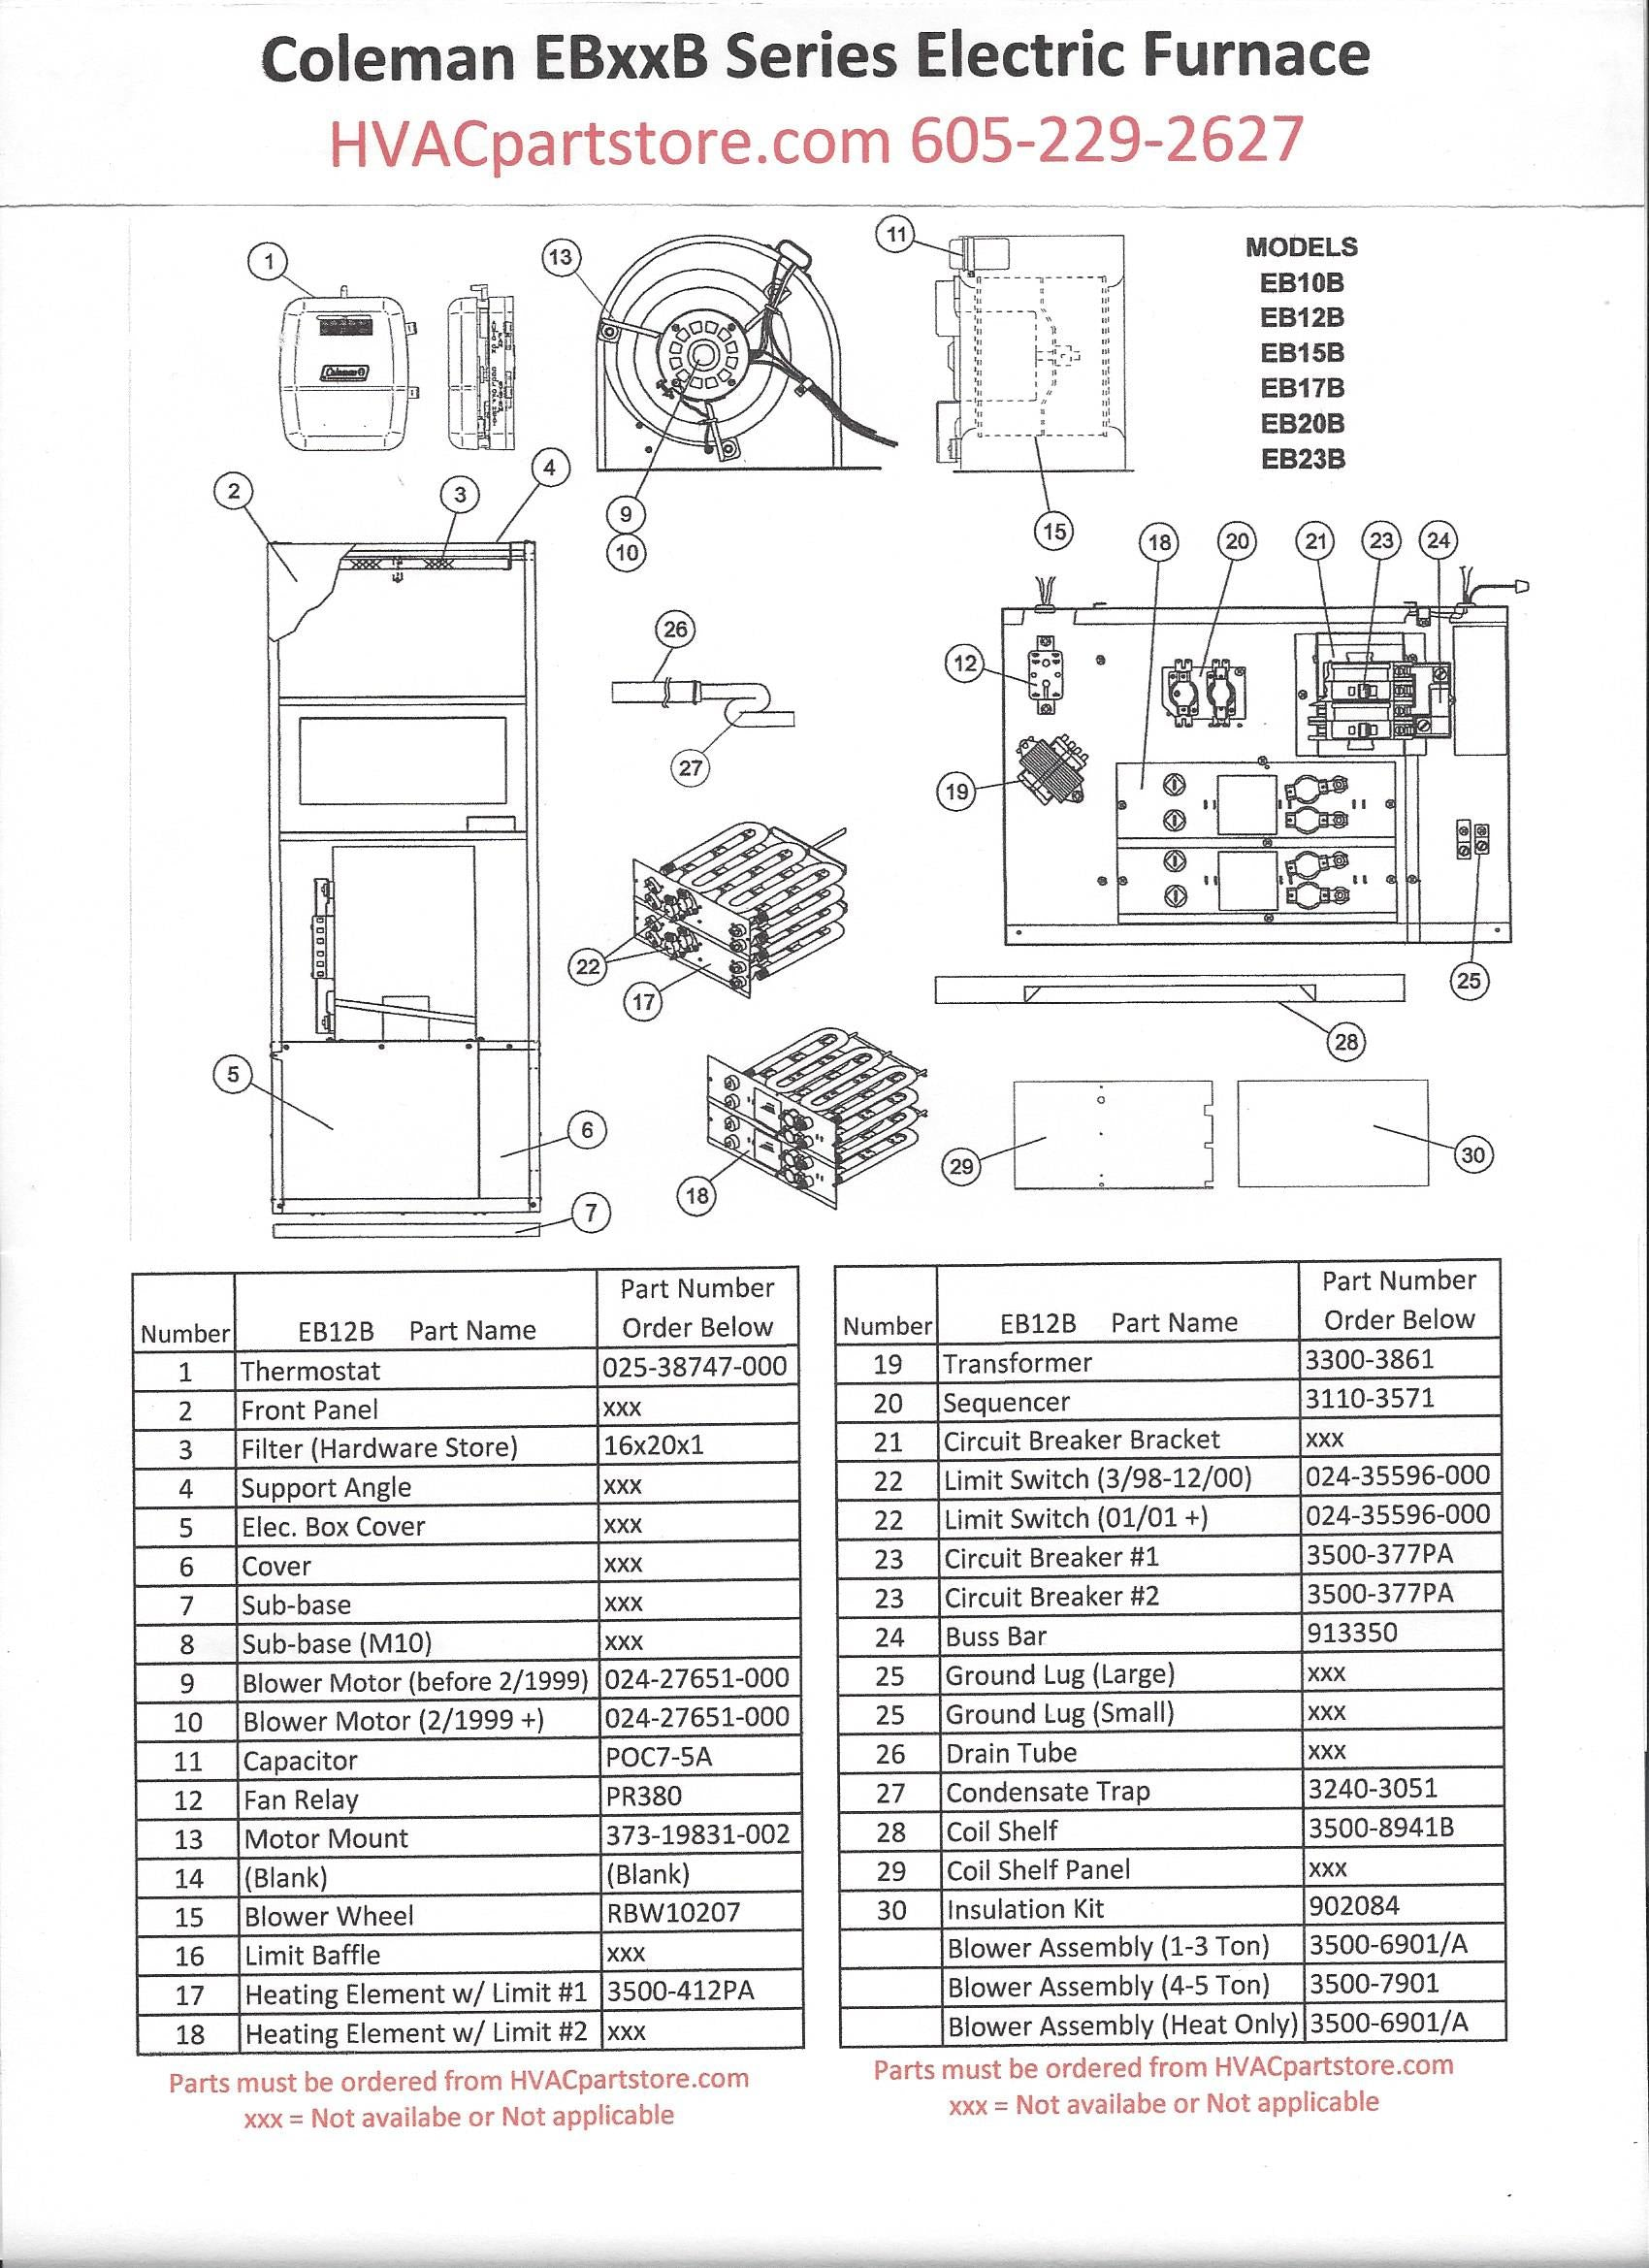 eb12b coleman electric furnace parts  u2013 hvacpartstore